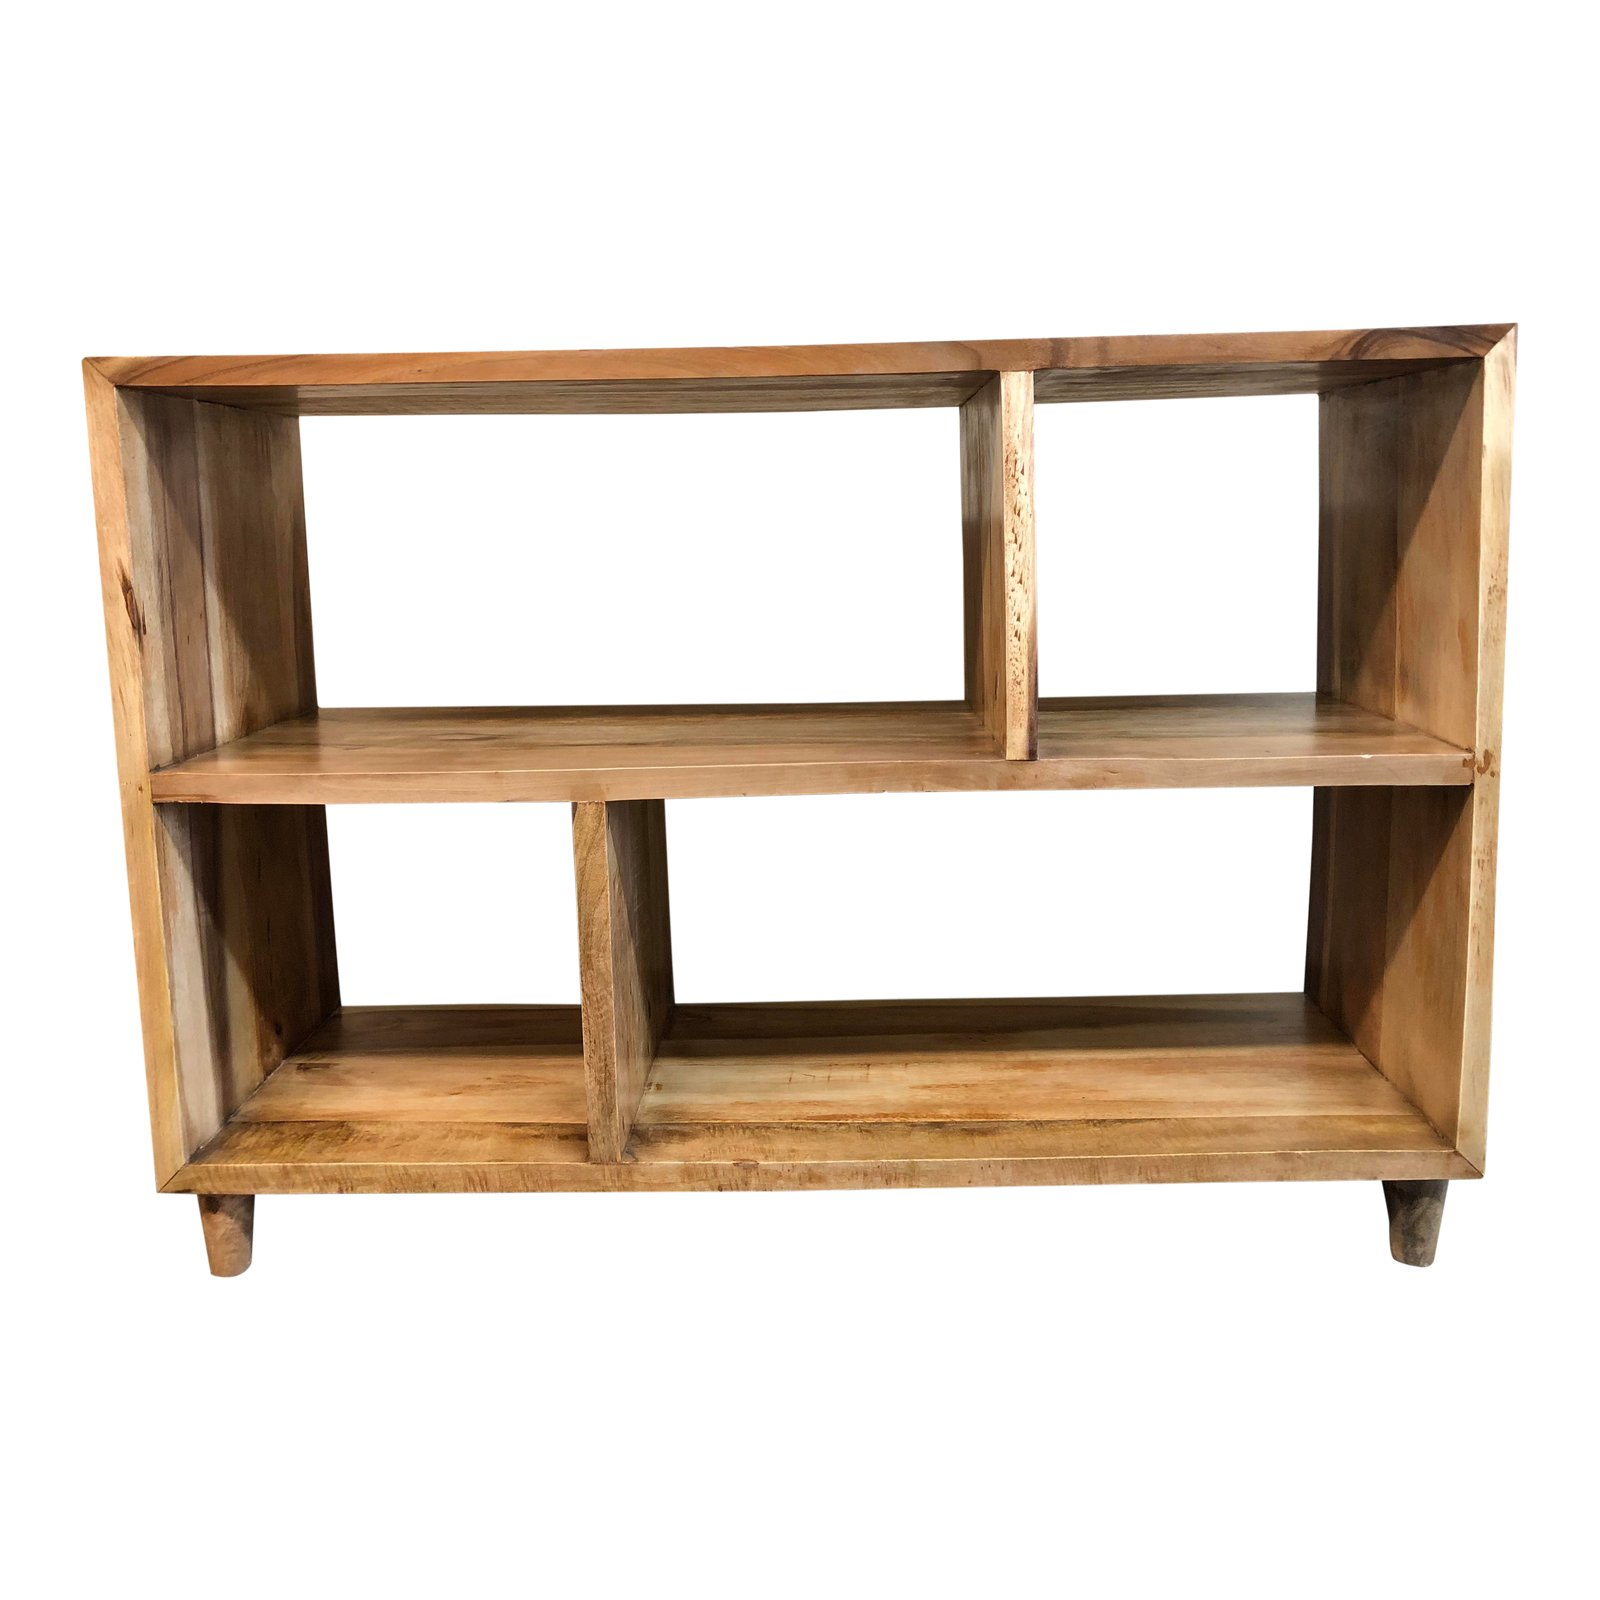 Reclaimed Hardwood Contemporary Console Bookshelf